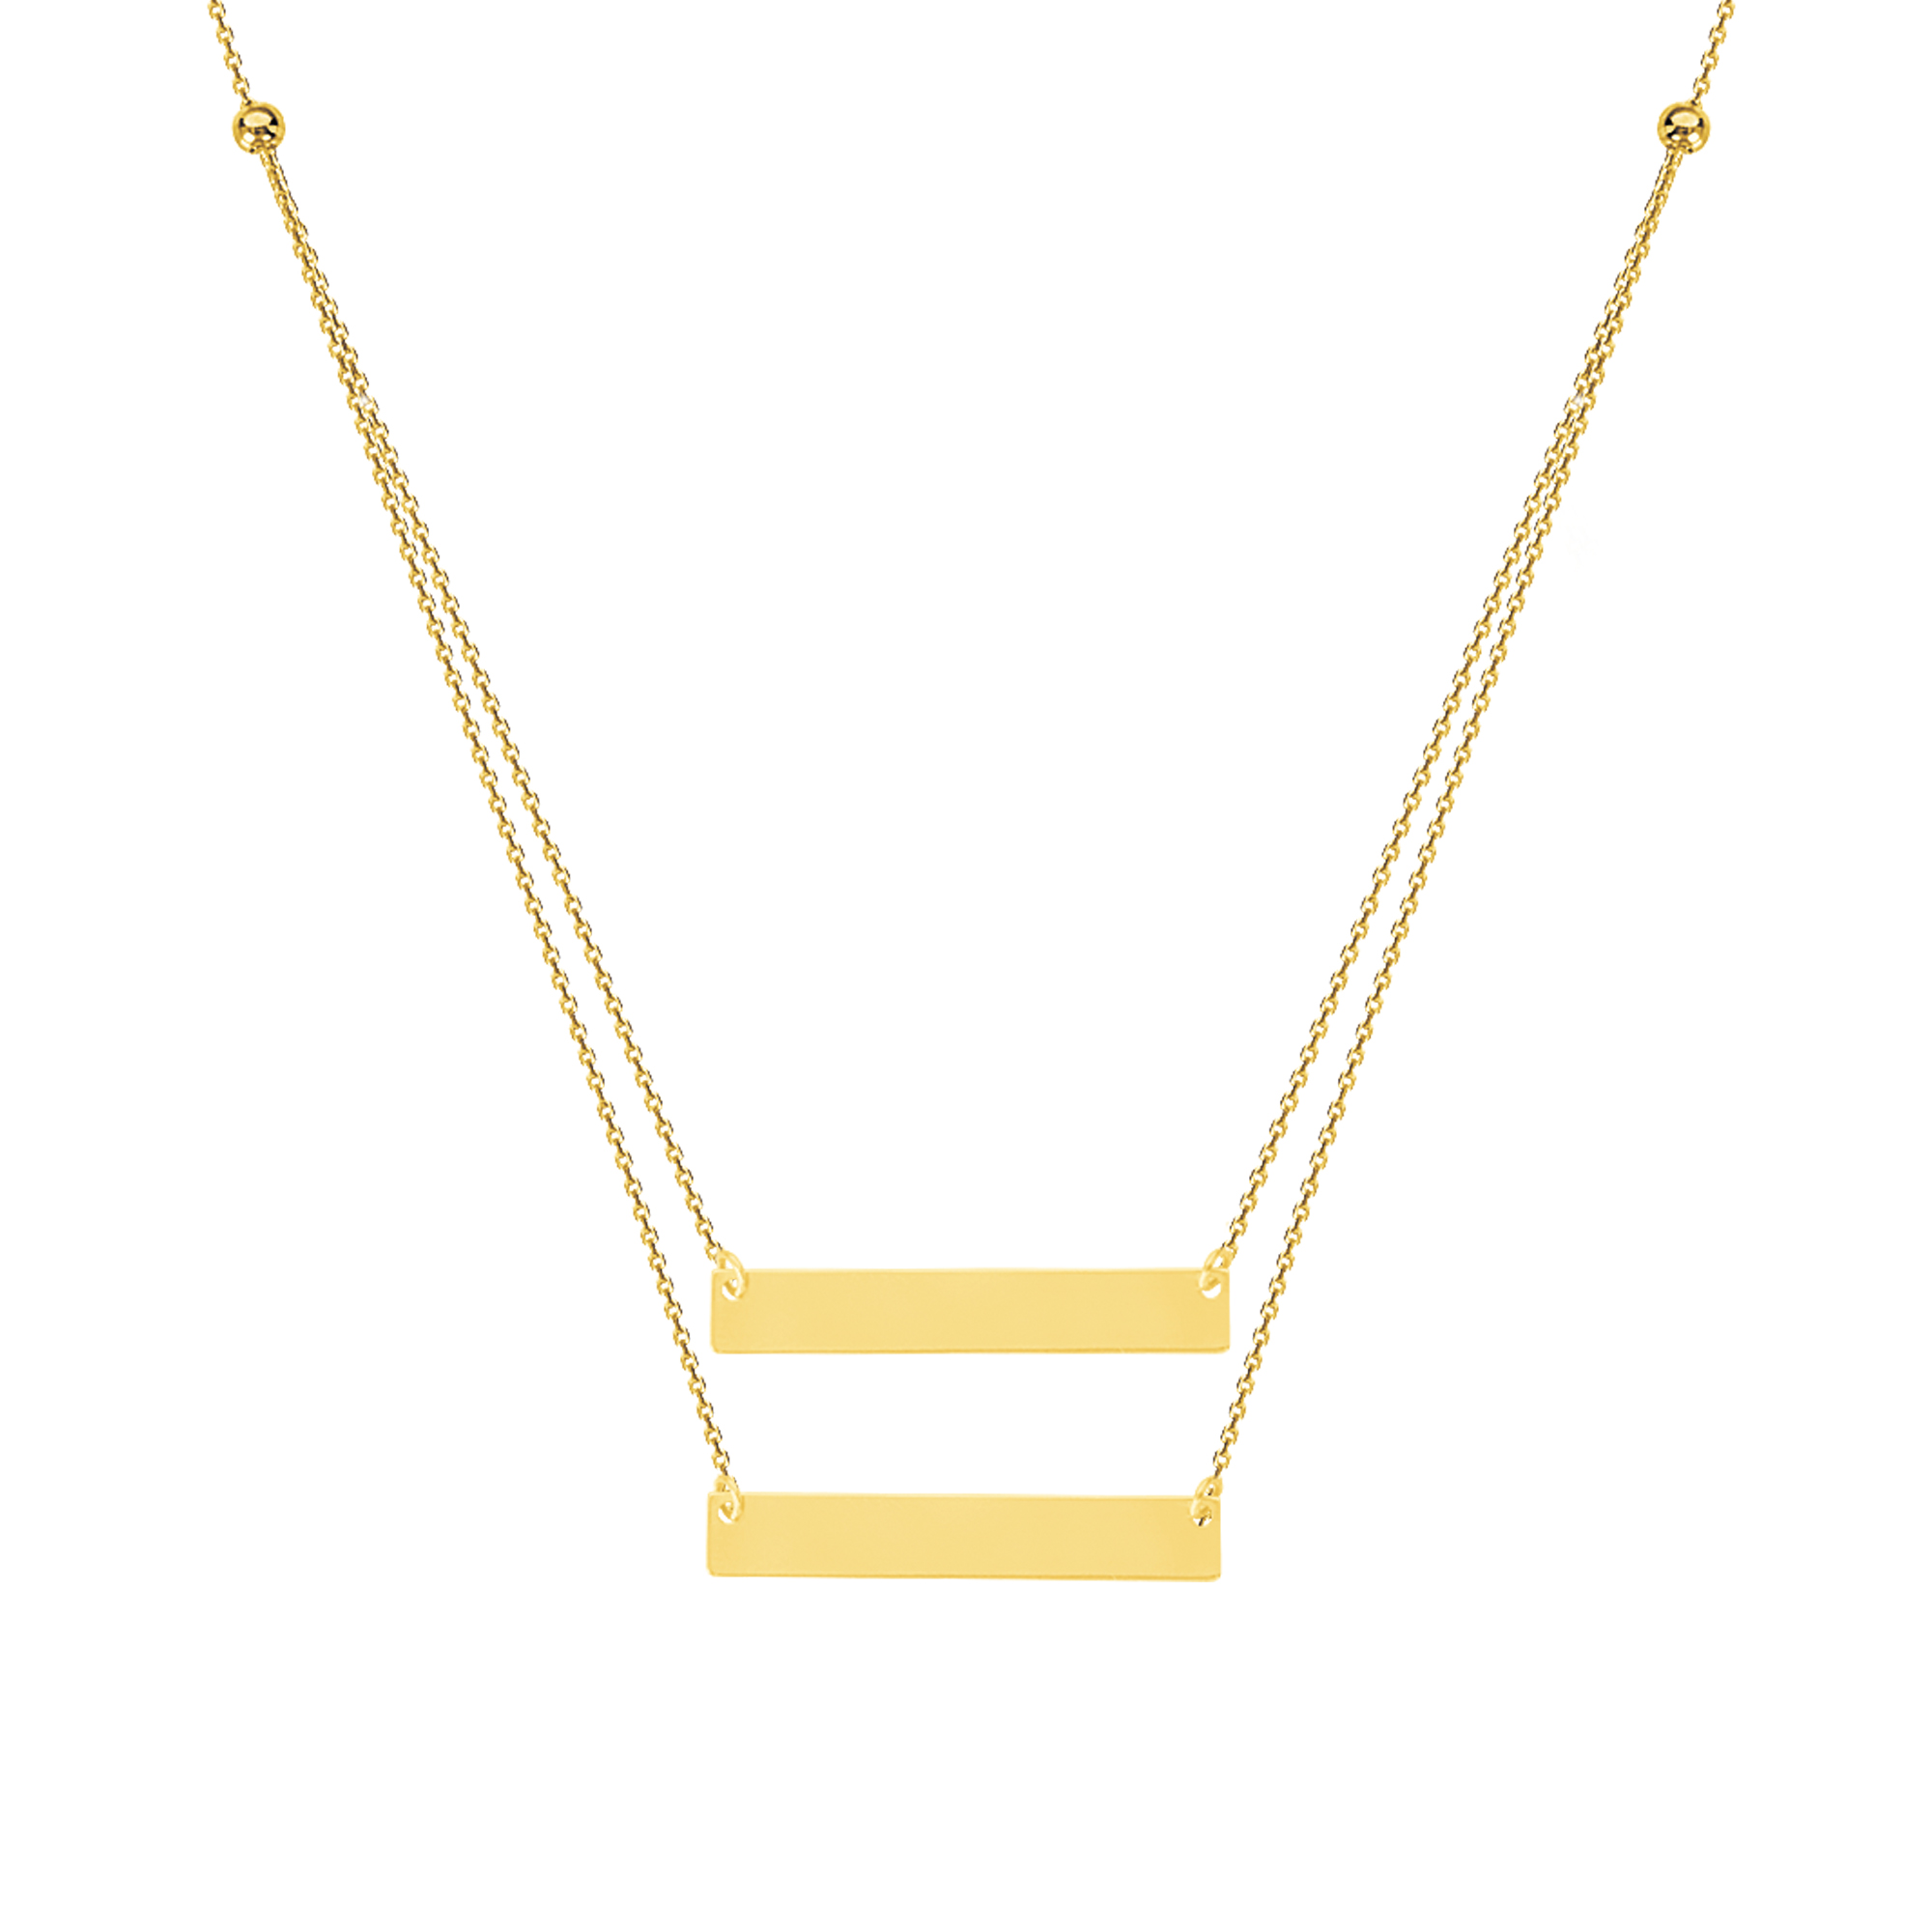 Name Plate Necklace, 14Kt Gold Name Plate  18